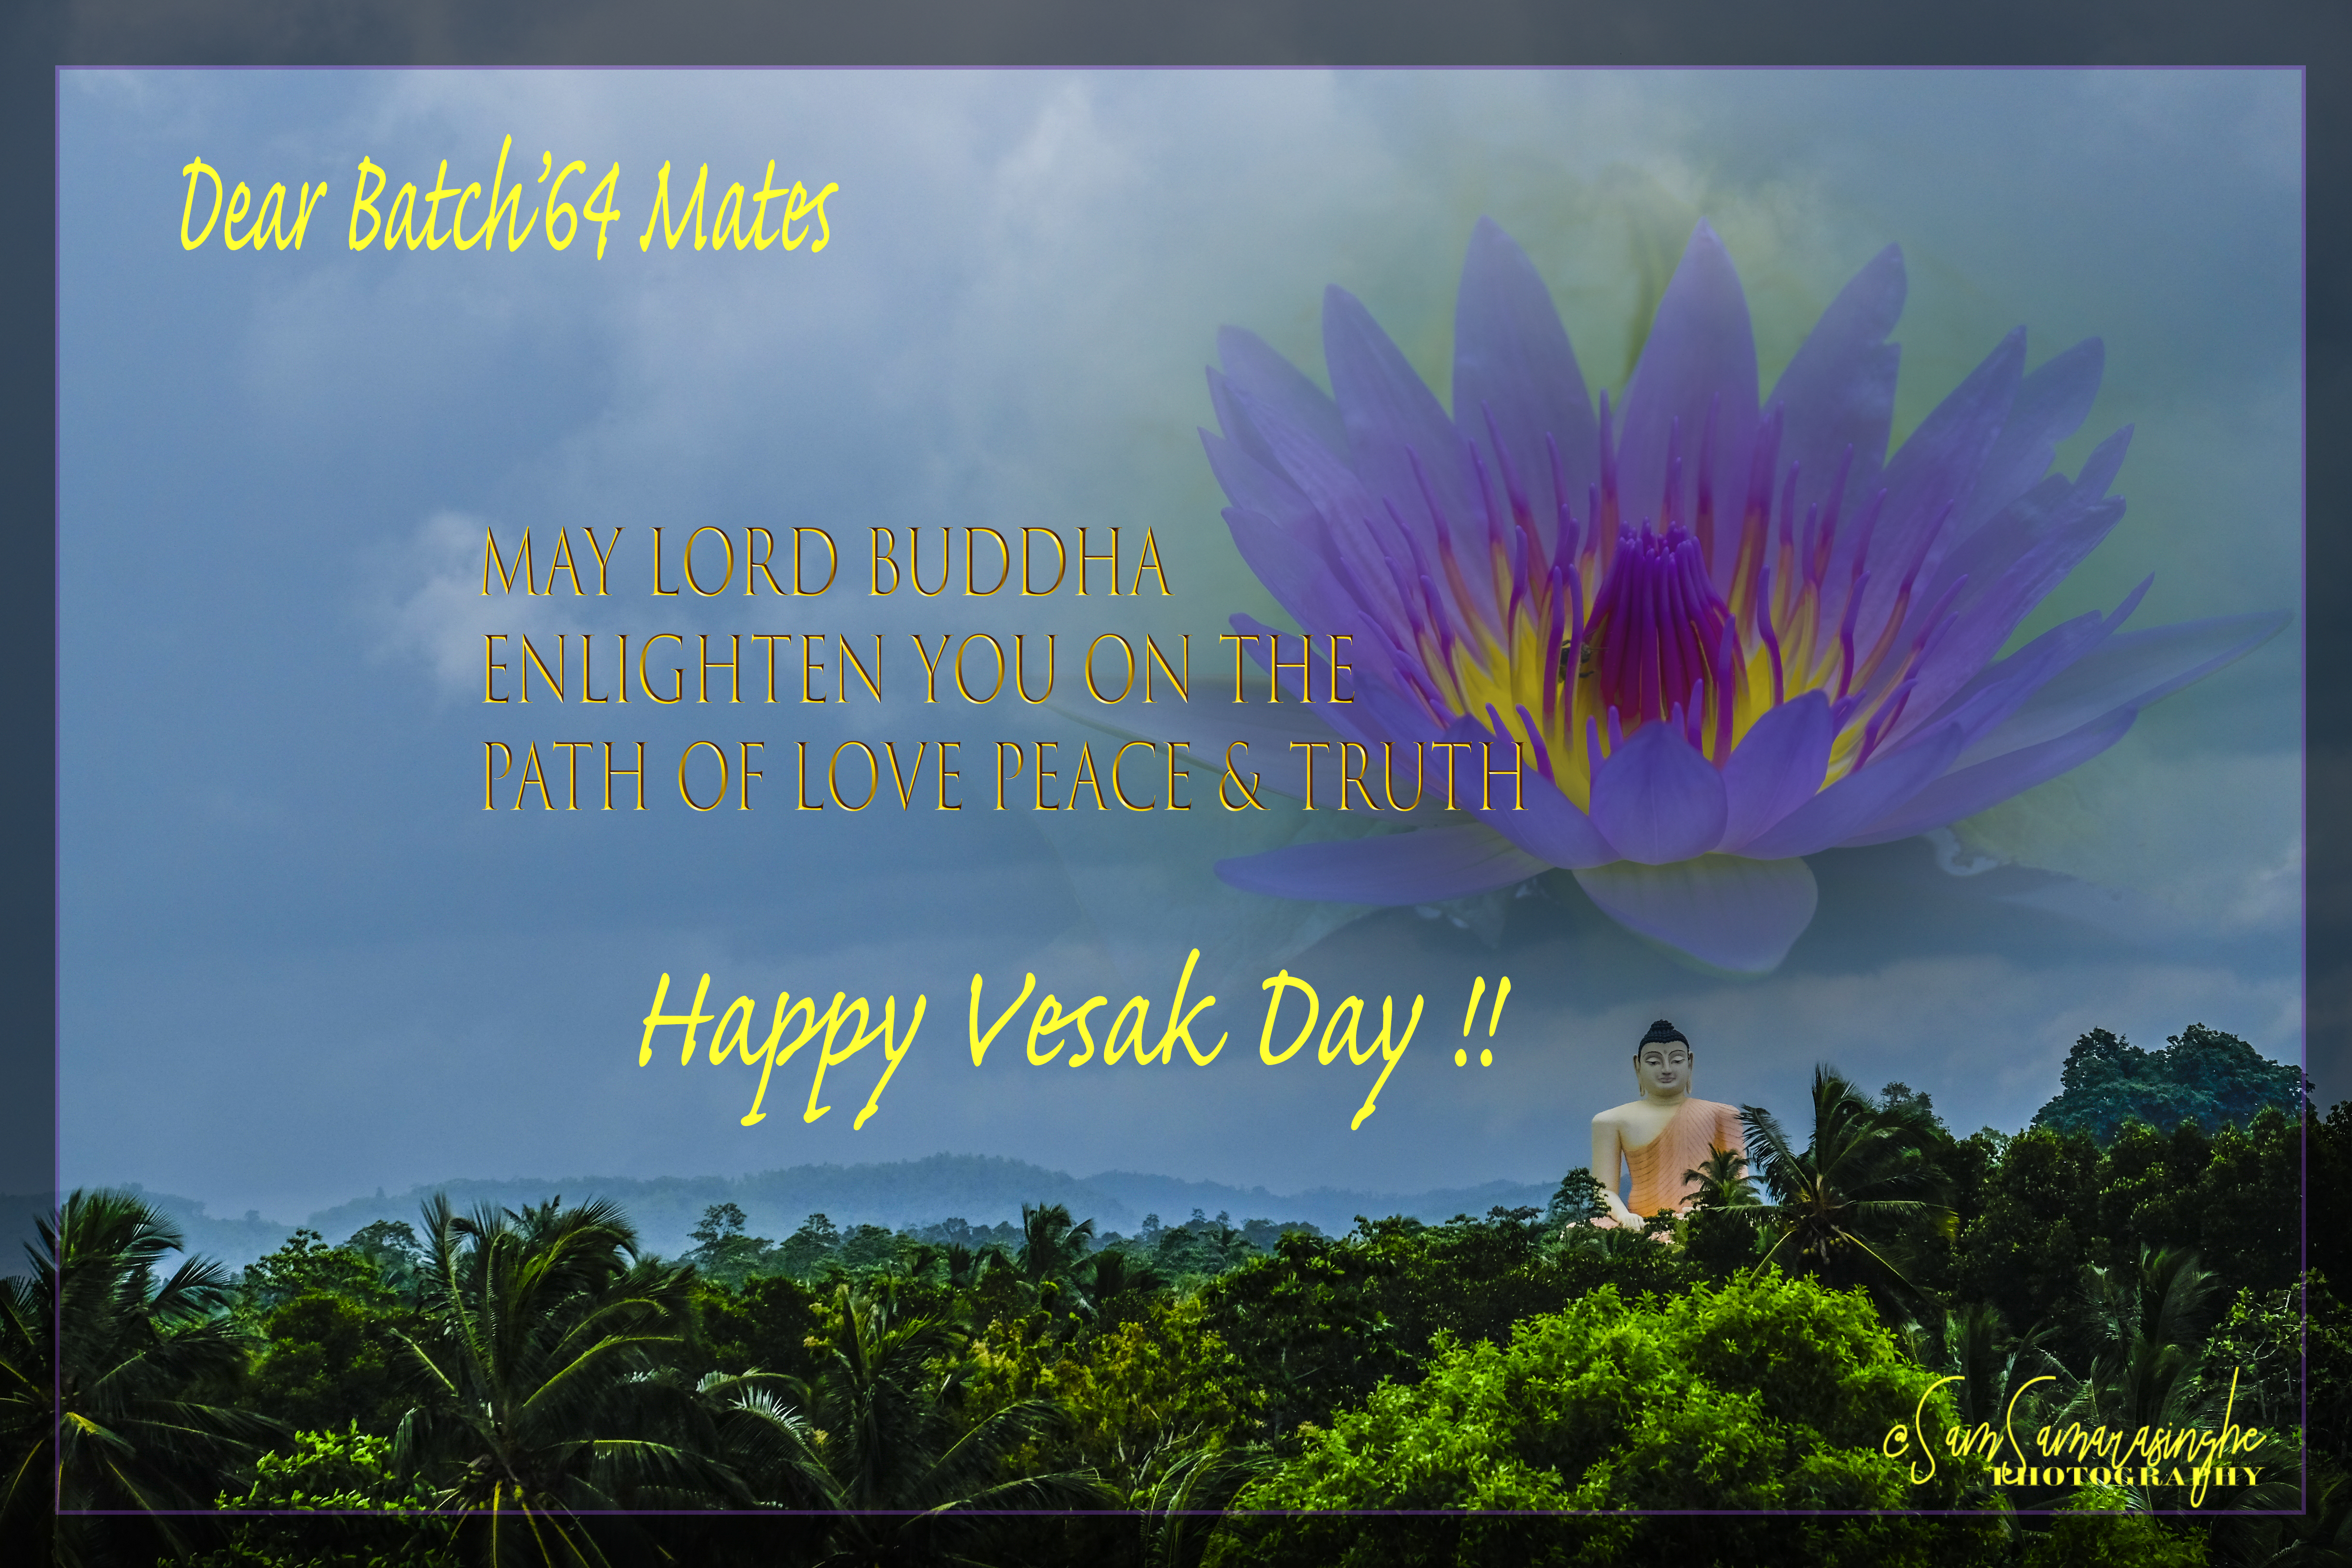 Vesak Greetings News Views And More From The Class Of 64